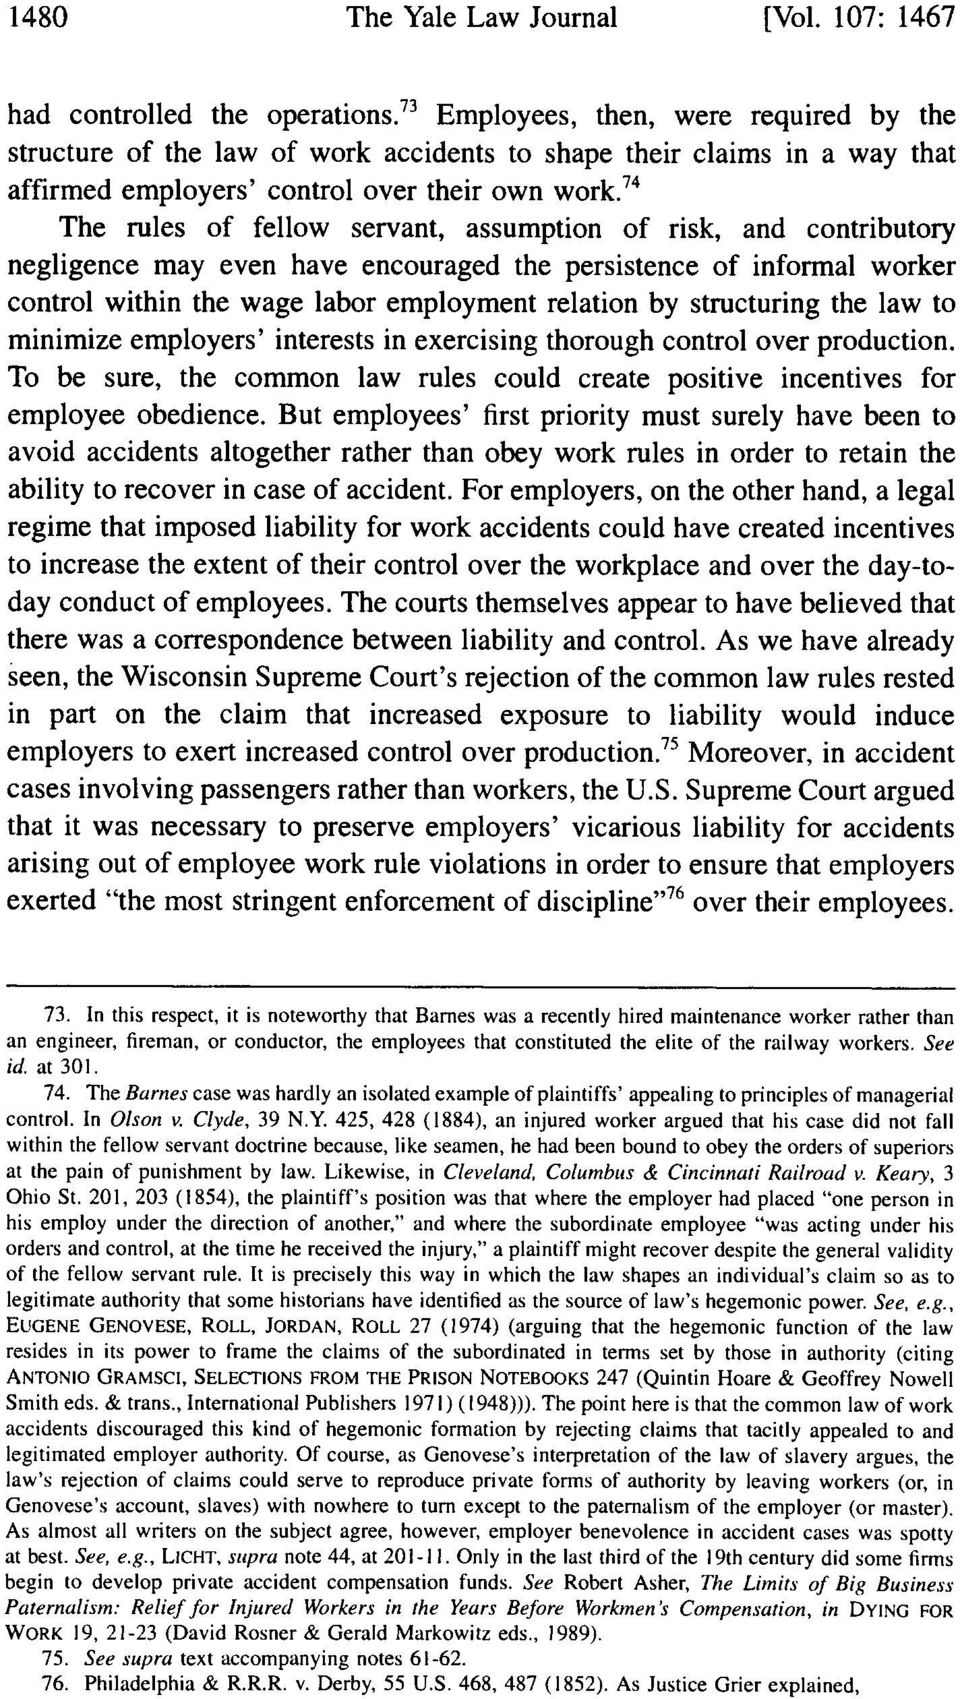 74 The rules of fellow servant, assumption of risk, and contributory negligence may even have encouraged the persistence of informal worker control within the wage labor employment relation by